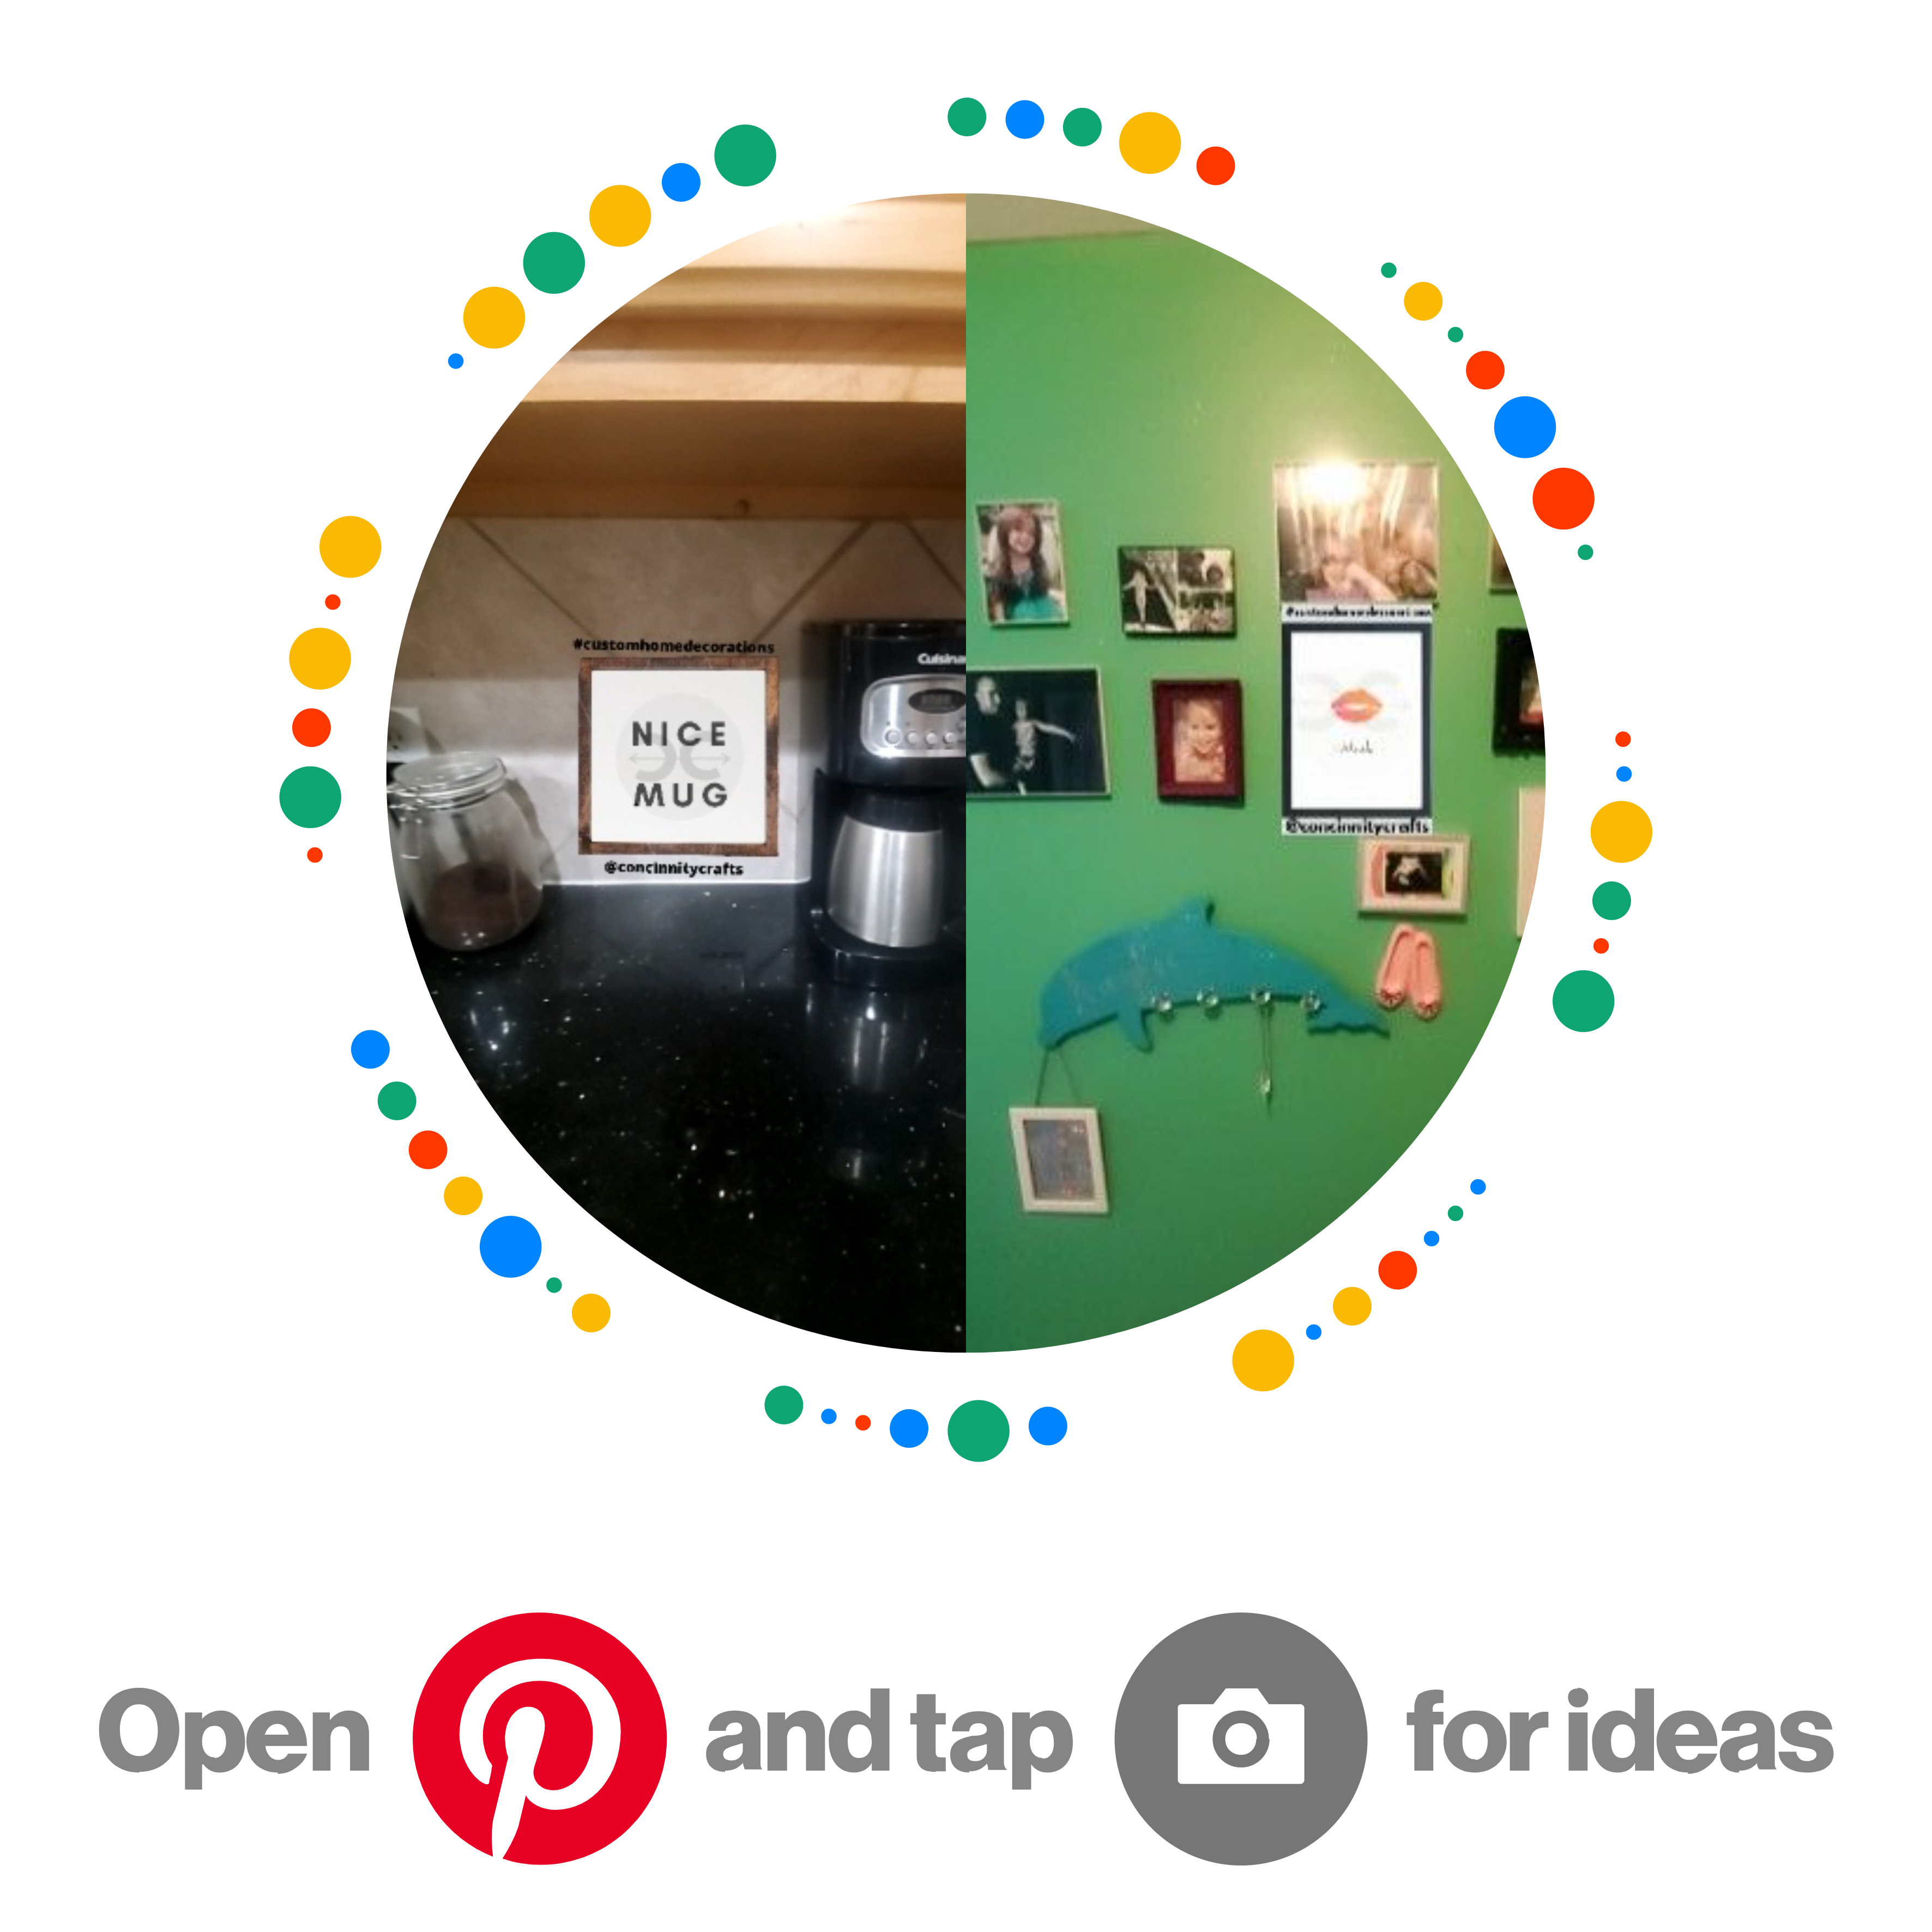 Get wall decor design ideas and inspiration! Feel free to try before you buy and see what your design would look like on your wall at home straight from your phone camera! Submit your photos on our website to get a chance to appear on social media! Follow @concinnitycrafts on Instagram! #concinnitycrafts #customhomedecorations